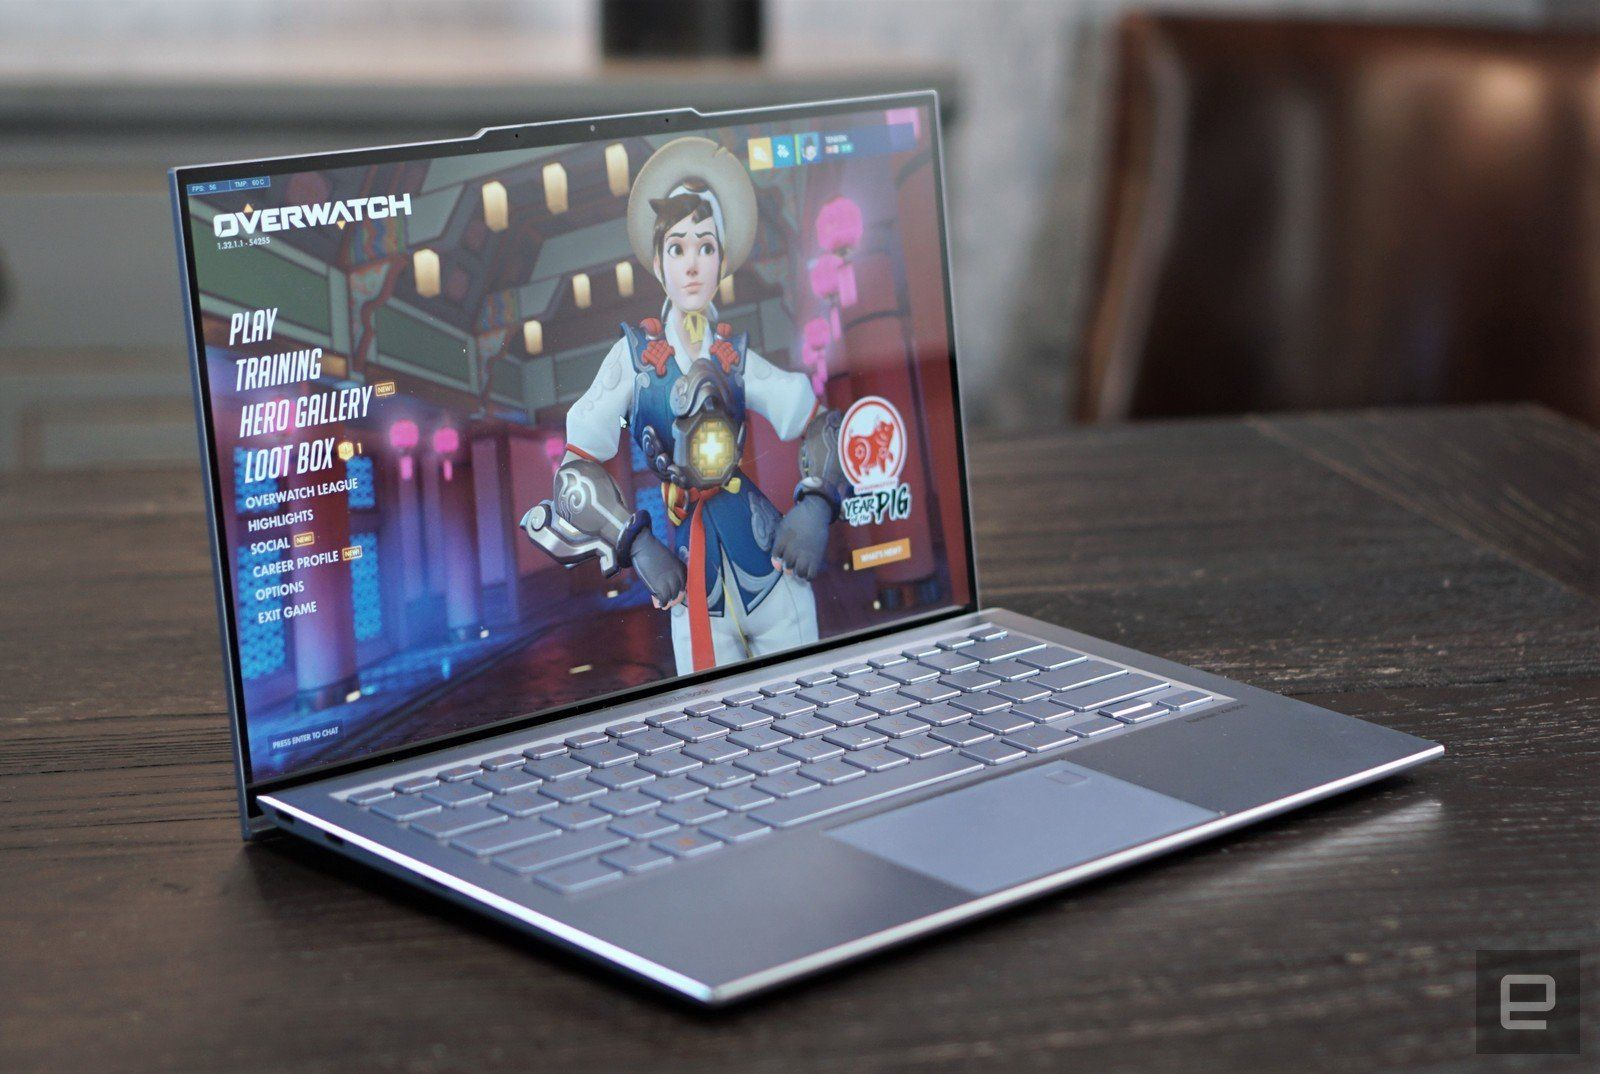 The Asus Zenbook S13 Might Be The Perfect Ultraportable Gaming Laptop And Here S Why Asus Latest Gadgets Gaming Desktop